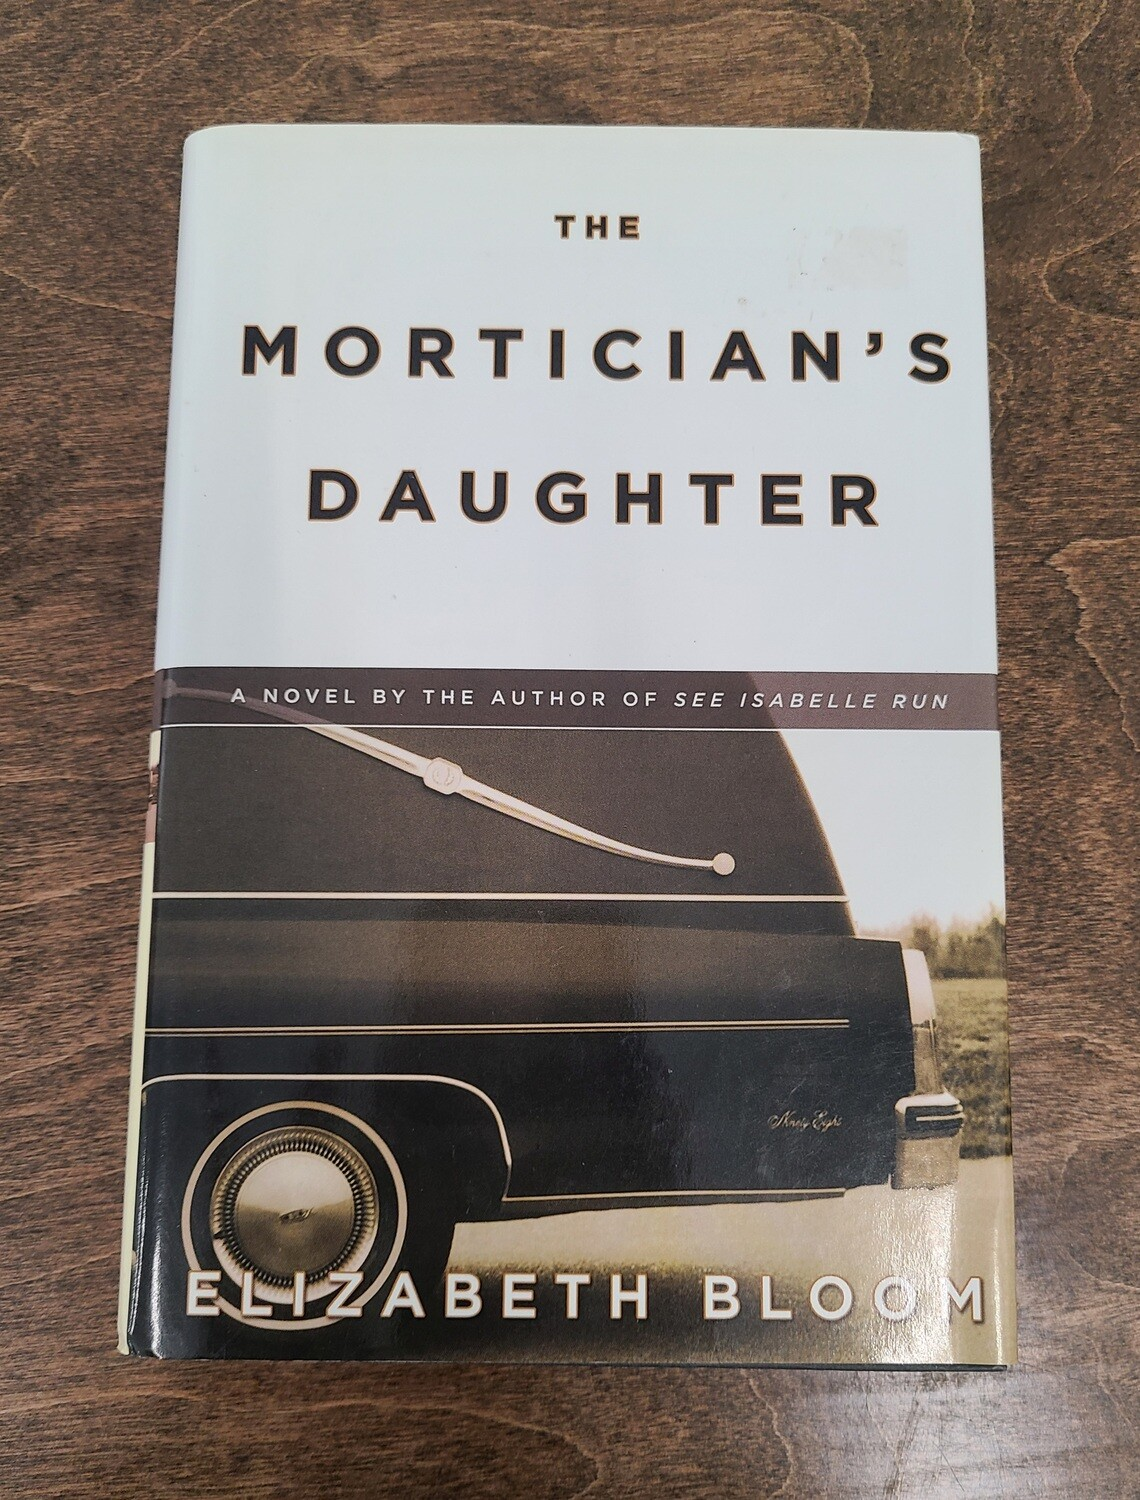 The Mortician's Daughter by Elizabeth Bloom